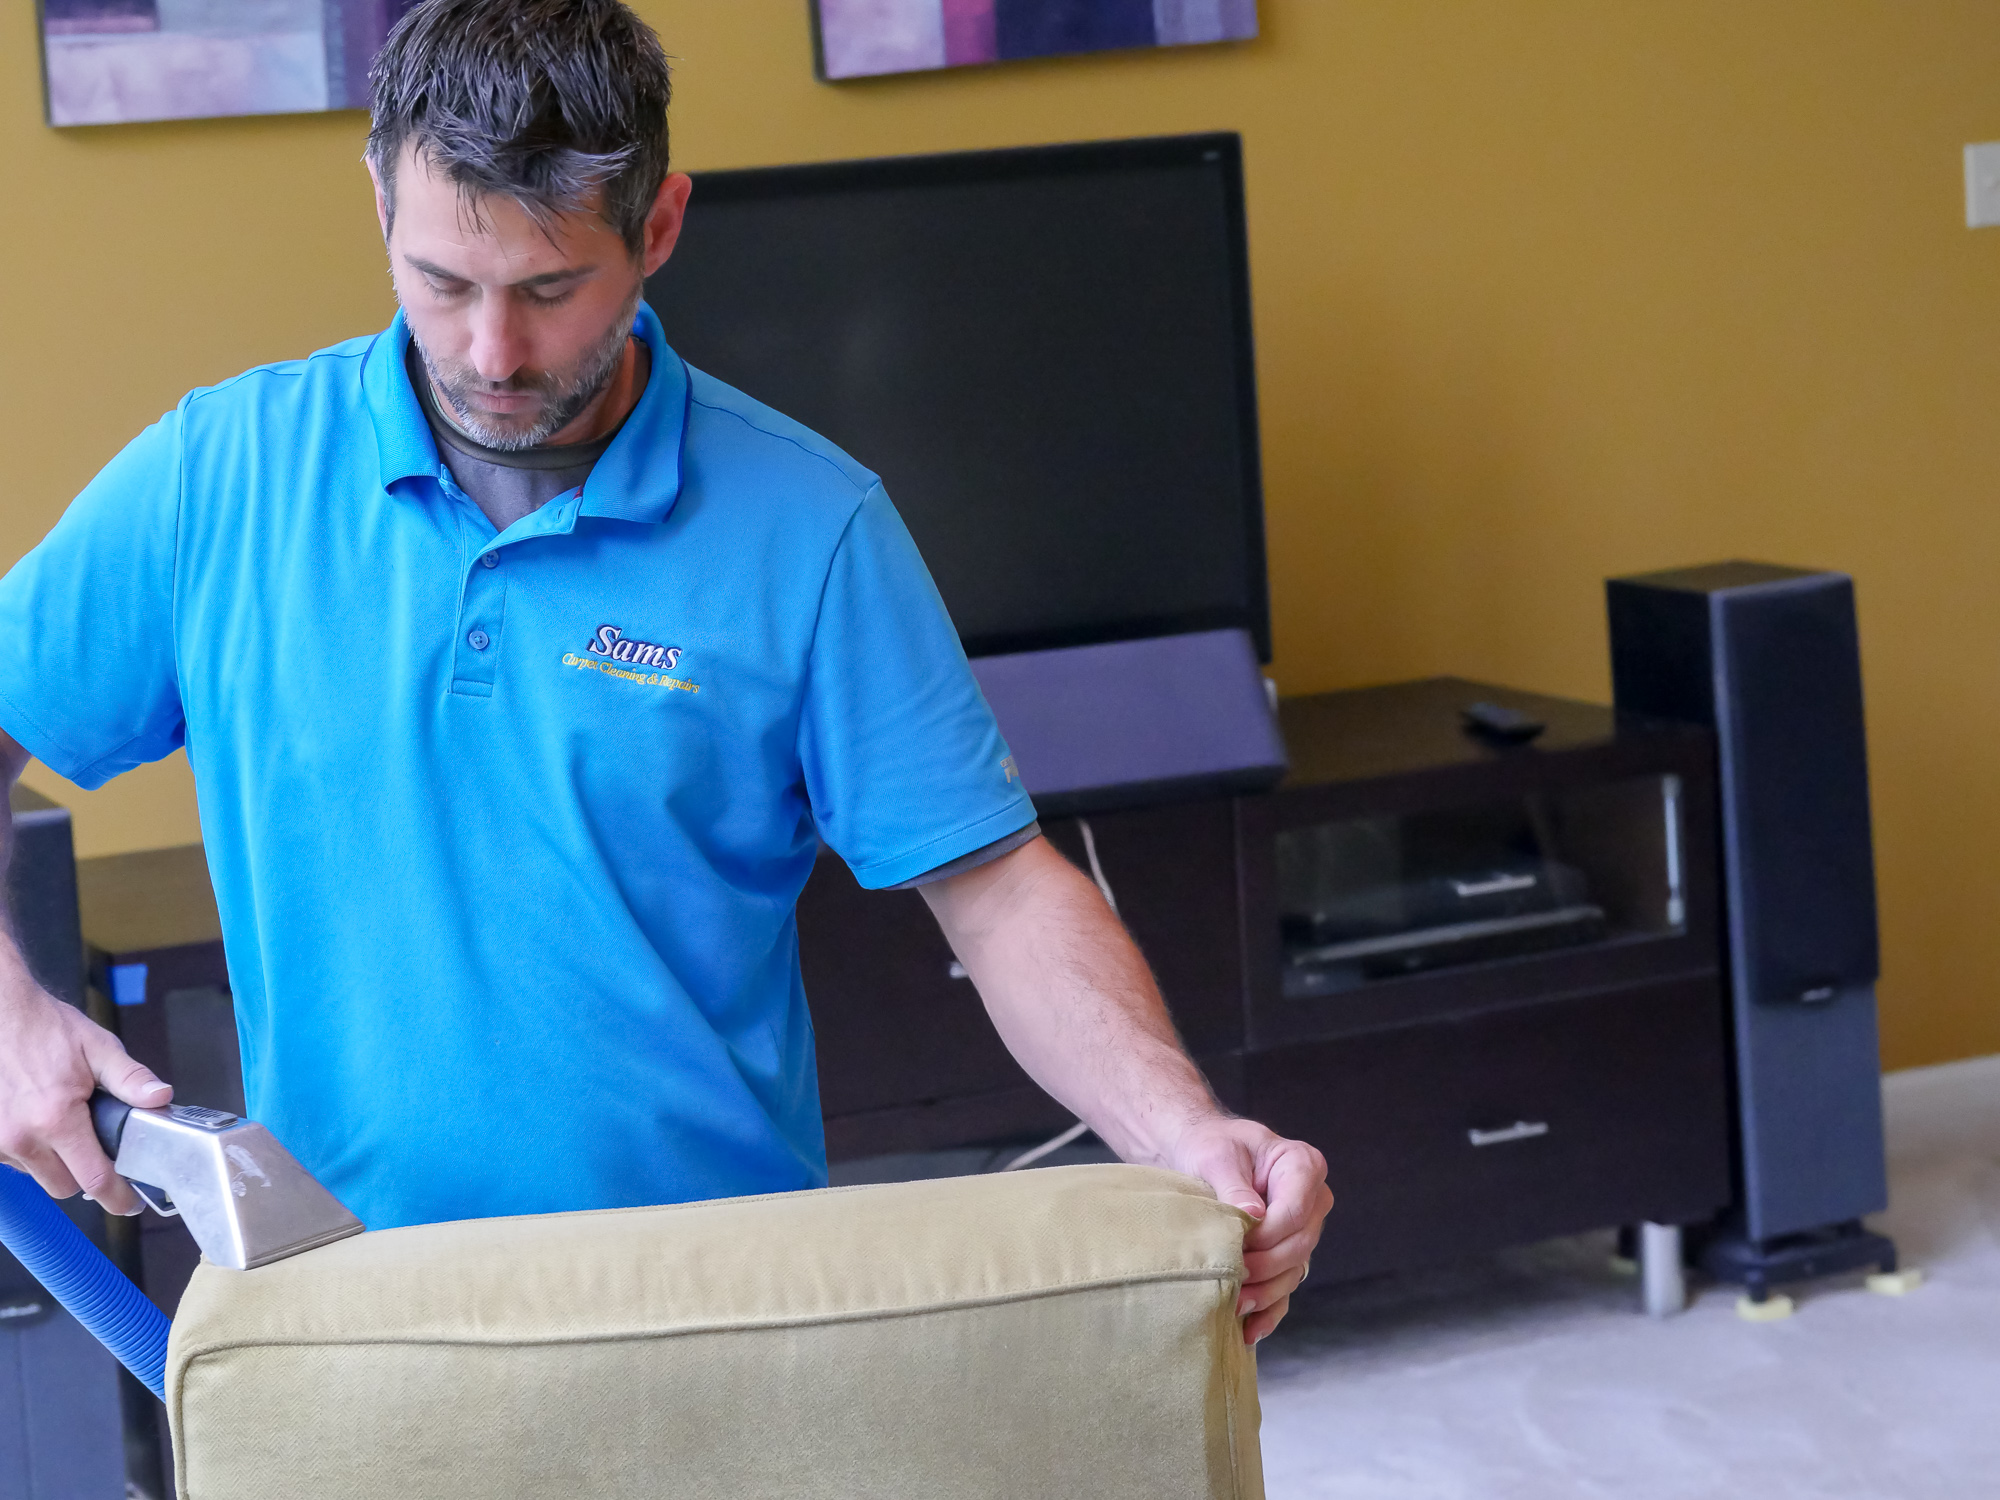 Sams professional cleaning the upholstery of the sofa